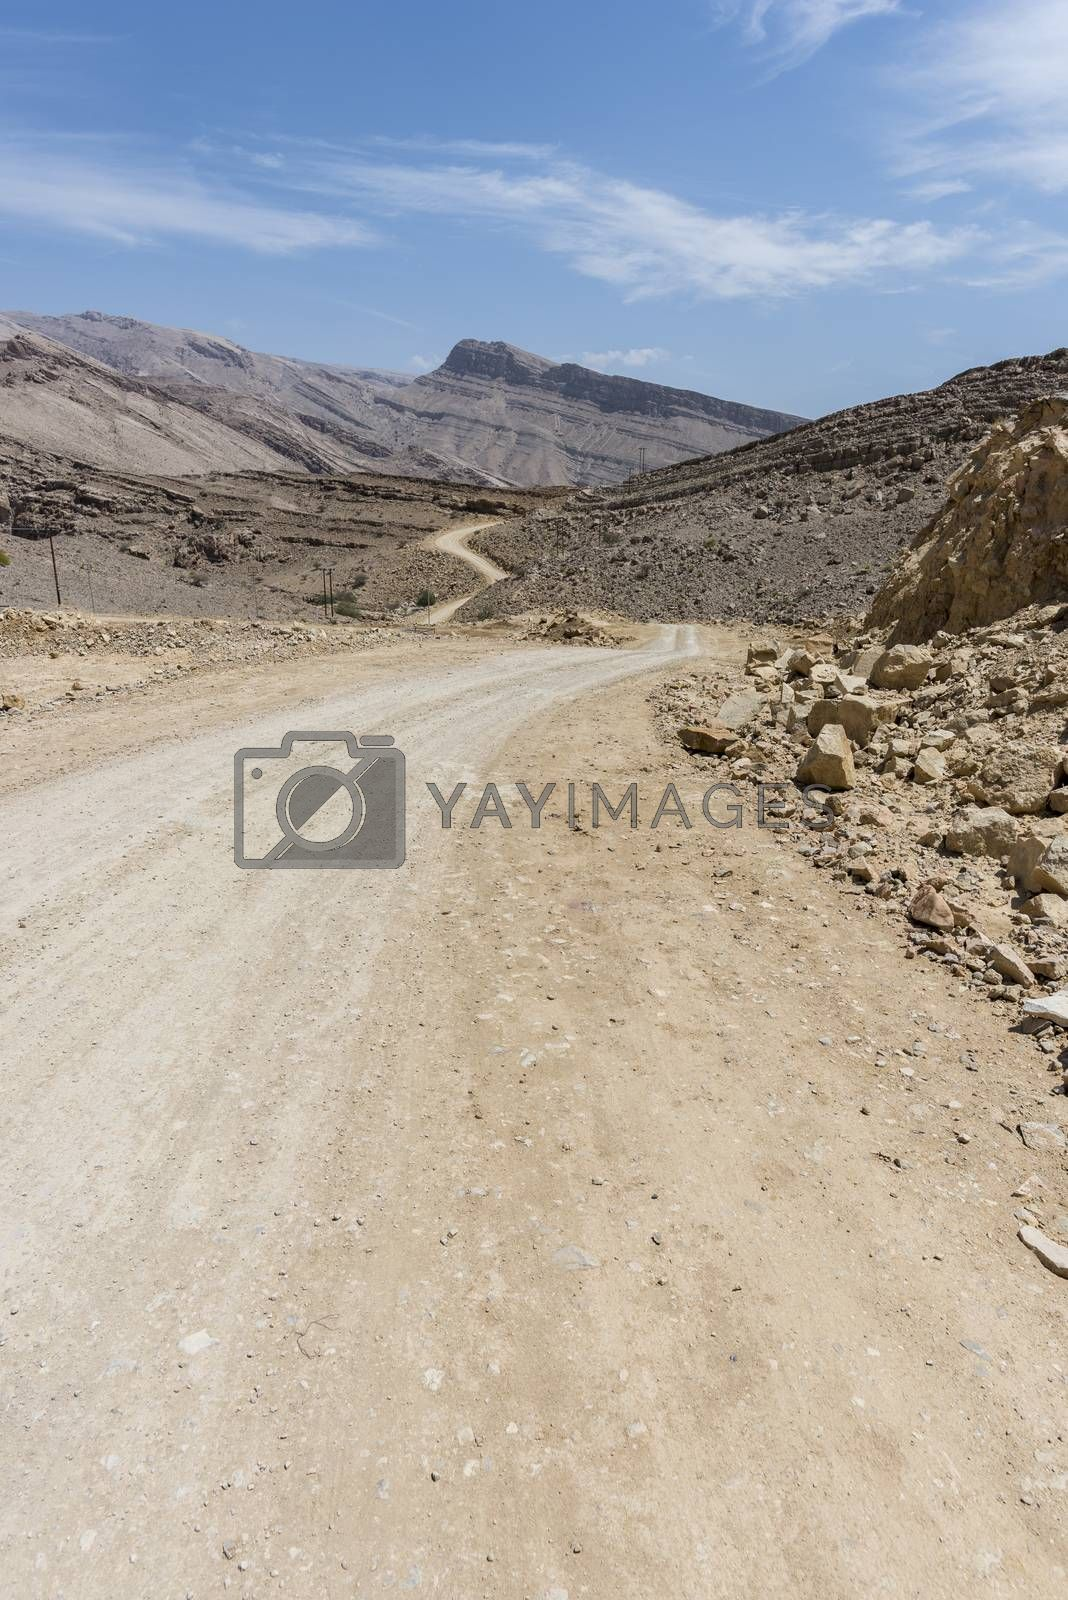 Unpaved road in rocky and wild mountains of the Sultanate of Oman.This path is close to Wadi Bani Khalid, a famous wadi where there penty of water and where we can enjoy swimming, contrasting with this arid and dry area.